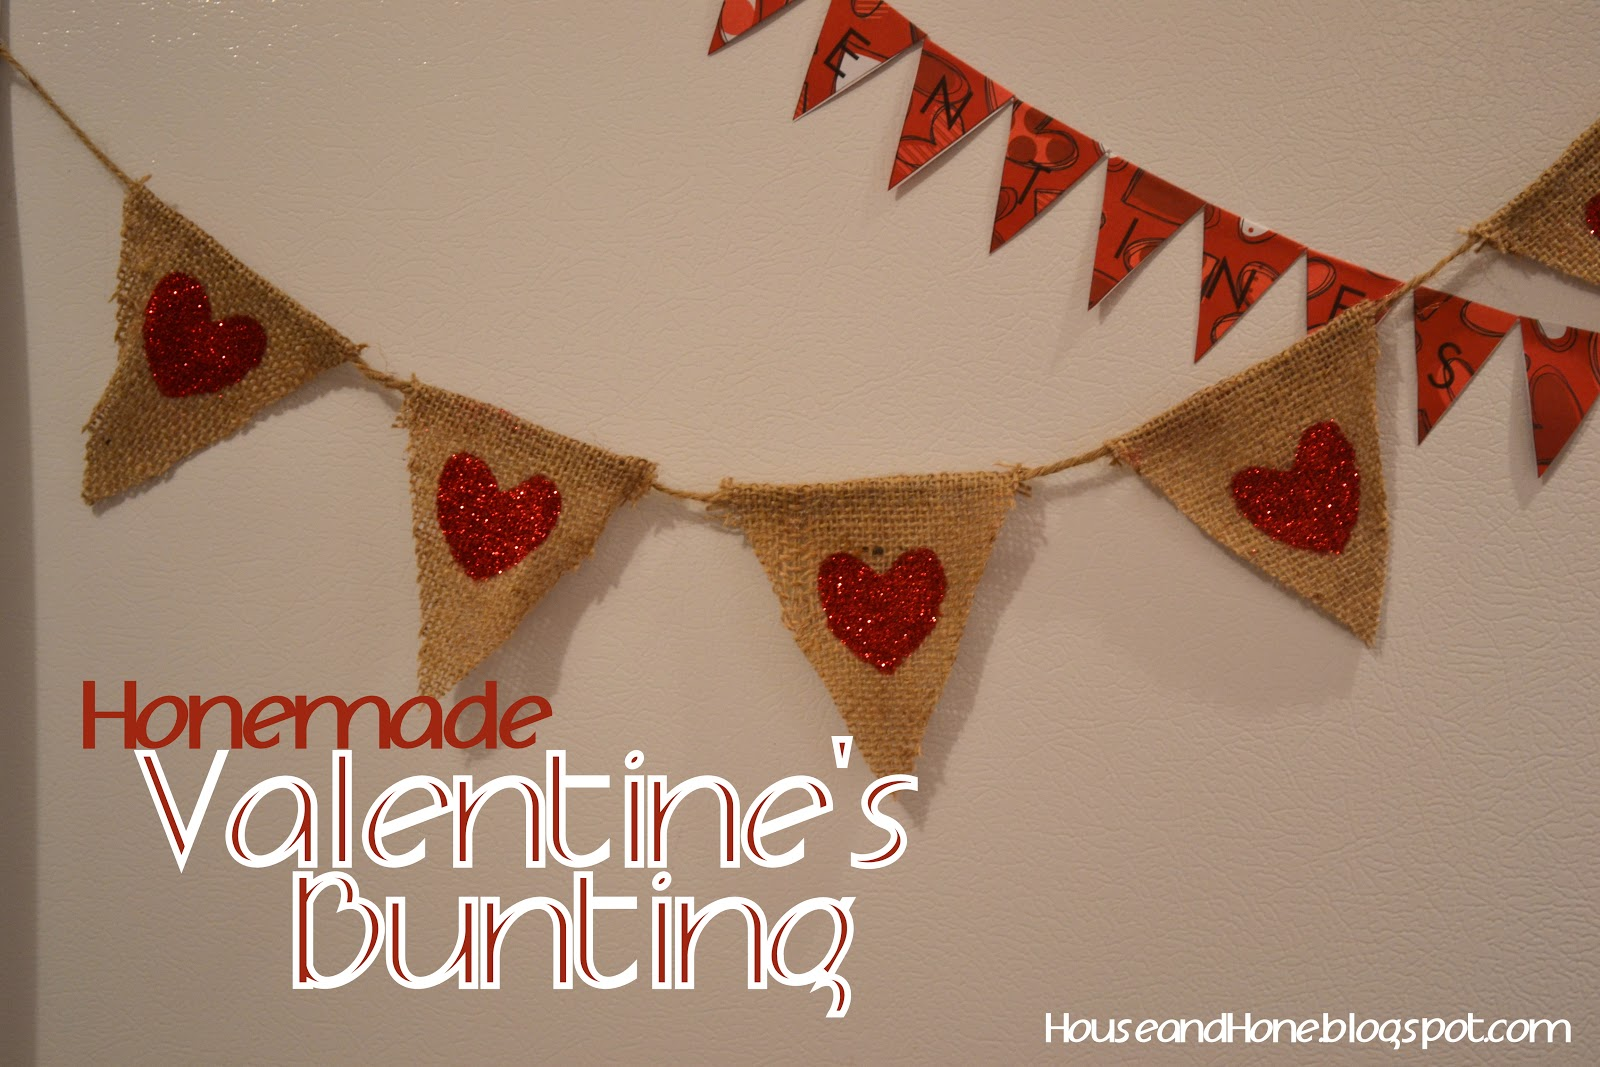 House and Hone: Valentines Bunting with Free Pattern!